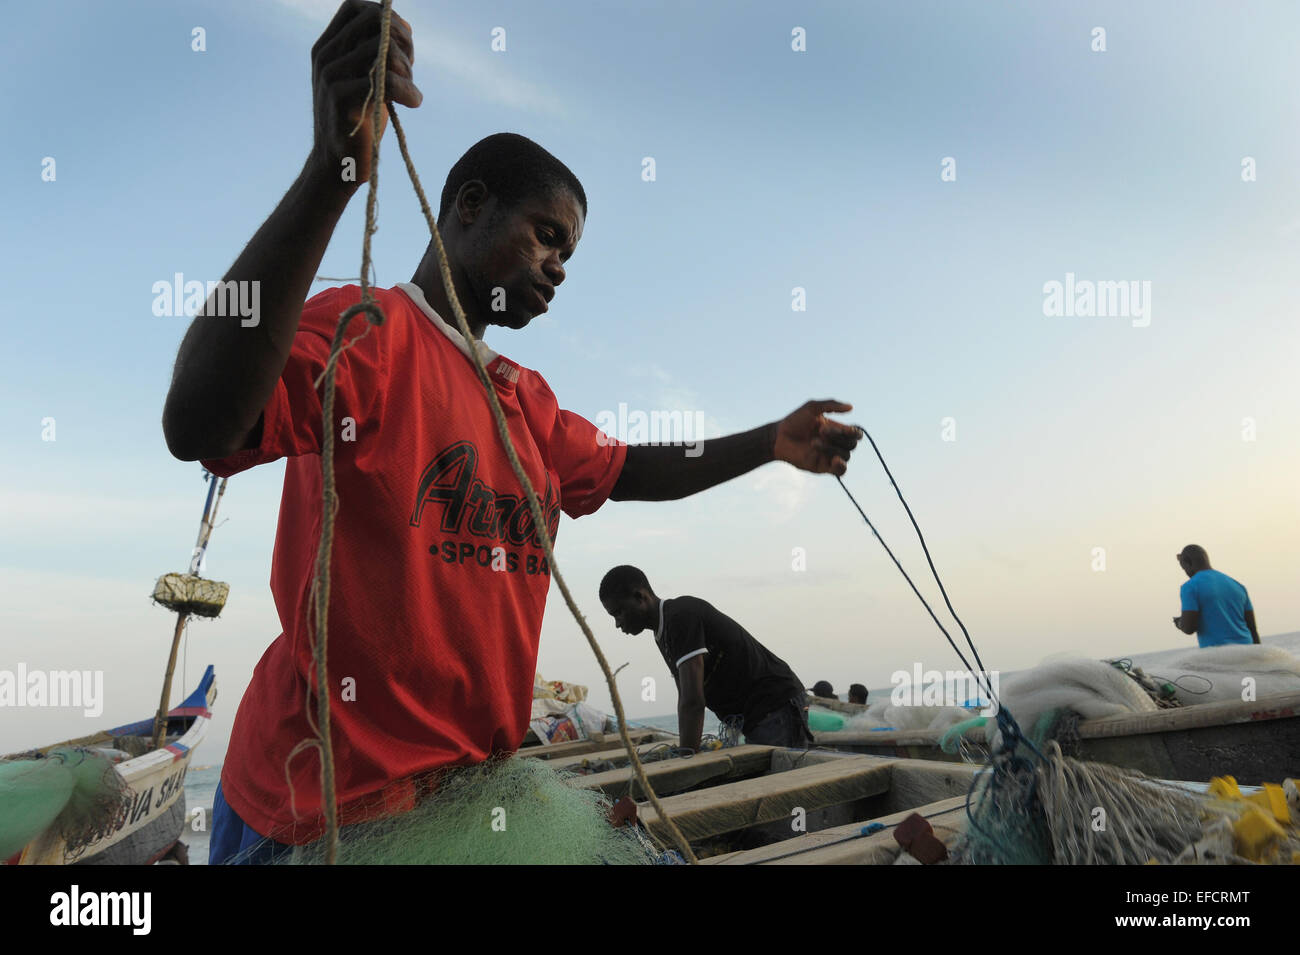 Fishermen stowing their nets after a day of fishing of the coast of Accra, Ghana, West Africa. - Stock Image